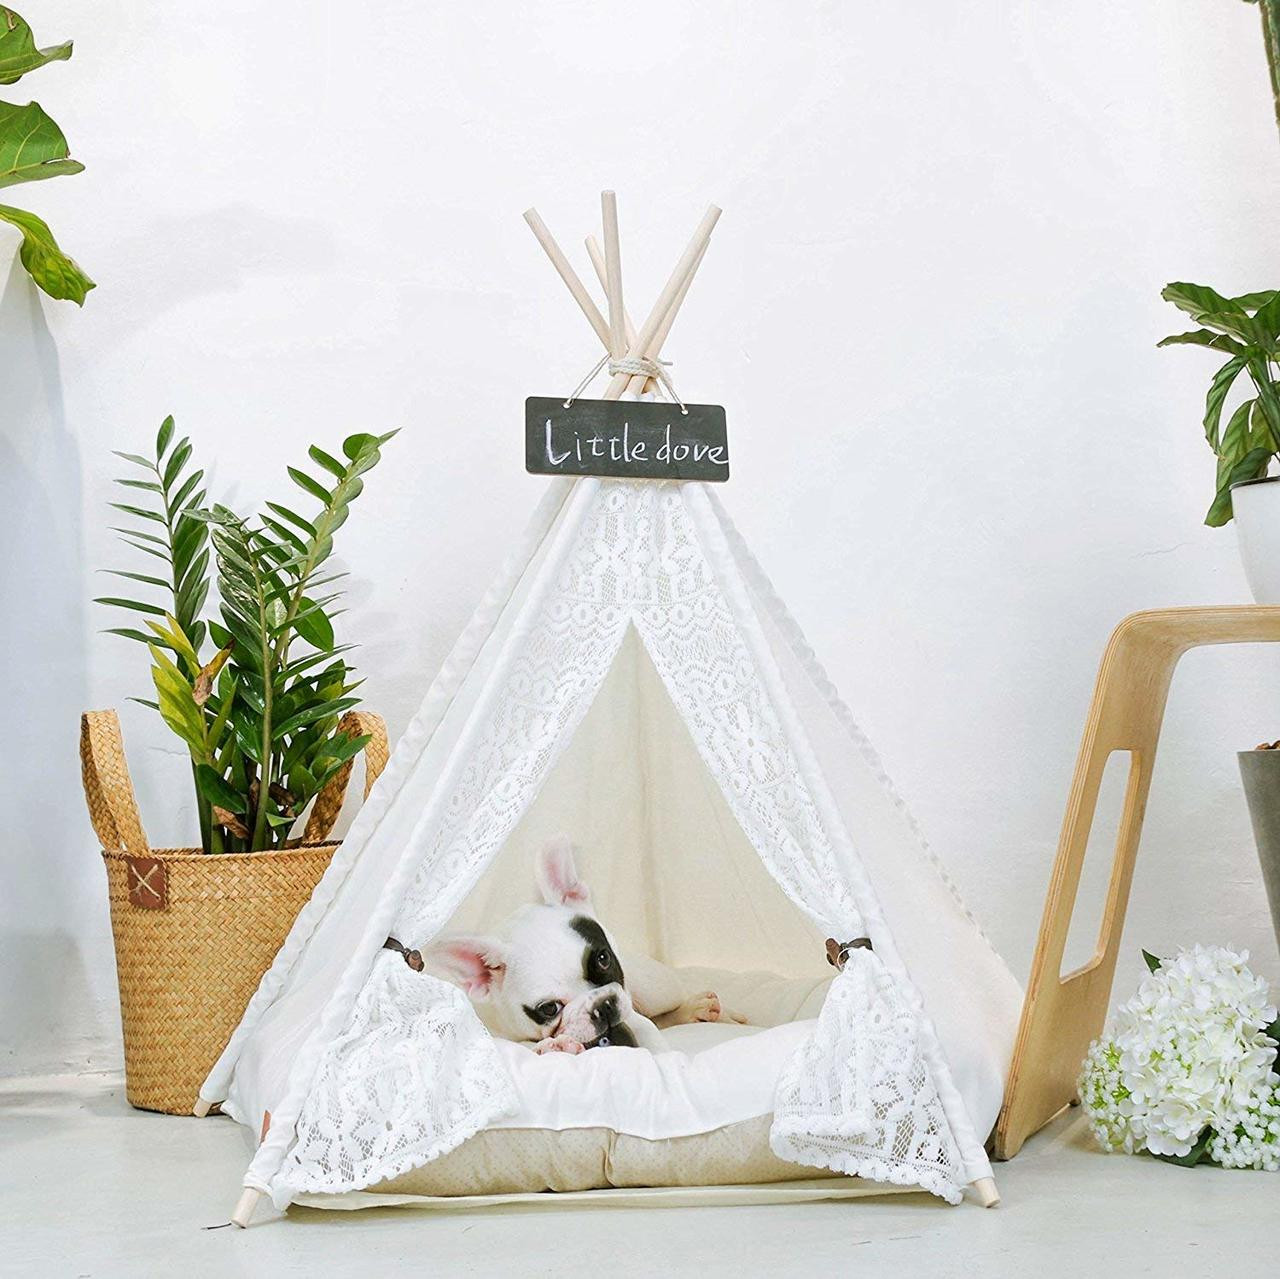 sc 1 st  Dog Clothes & Pet Teepee Dog(Puppy) u0026 Cat Bed - Portable Pet Tents u0026 Houses for Dog